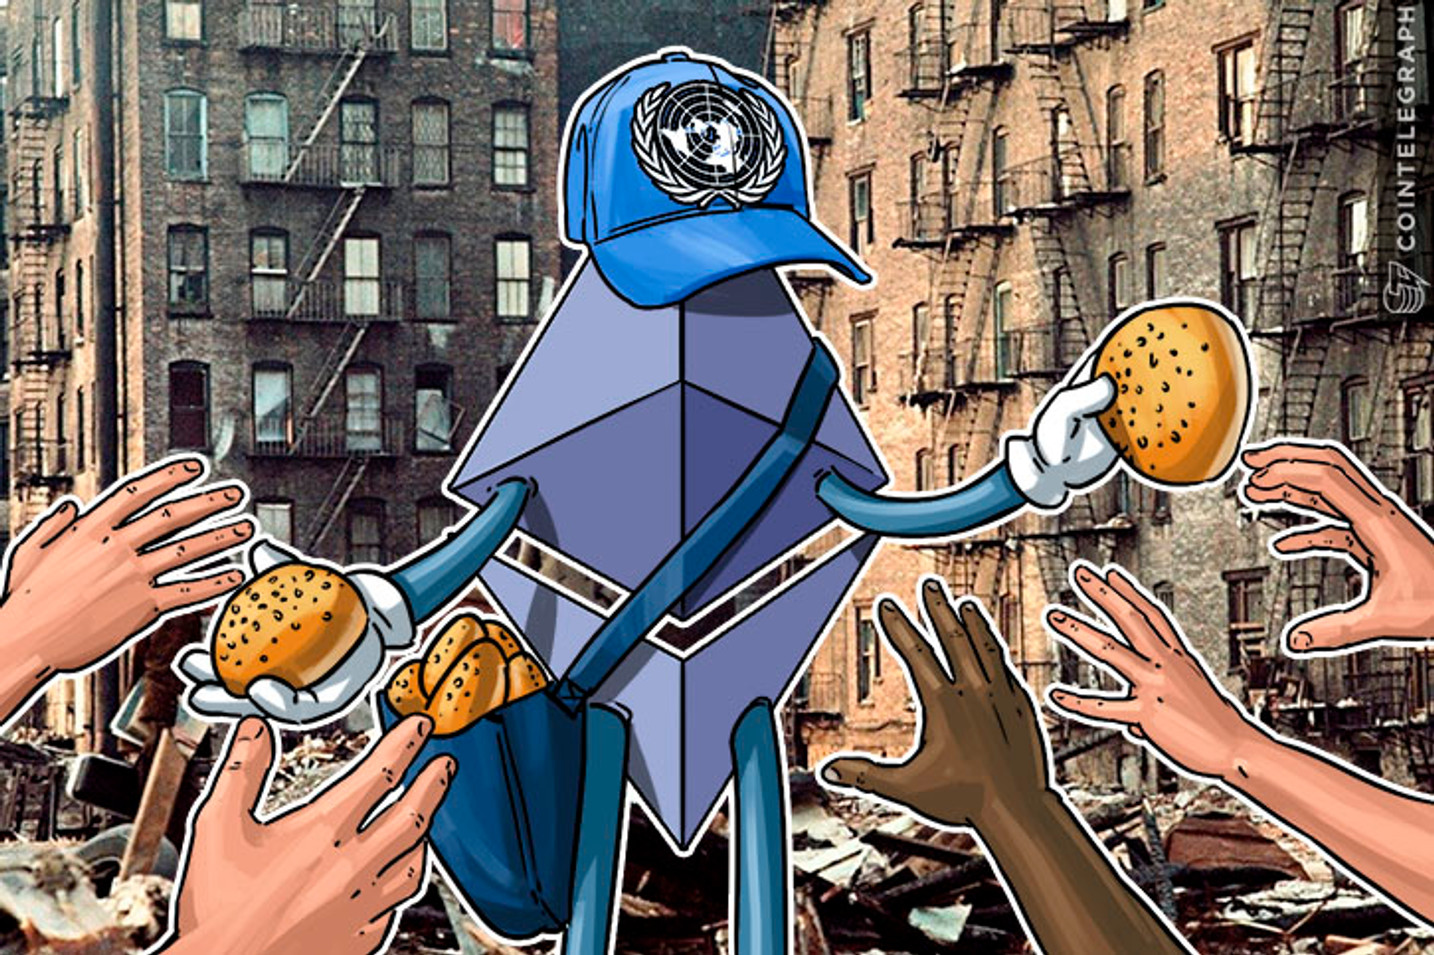 Ethereum Blockchain Will Help UN Go Cashless, Distribute Food to Hungry in Jordan